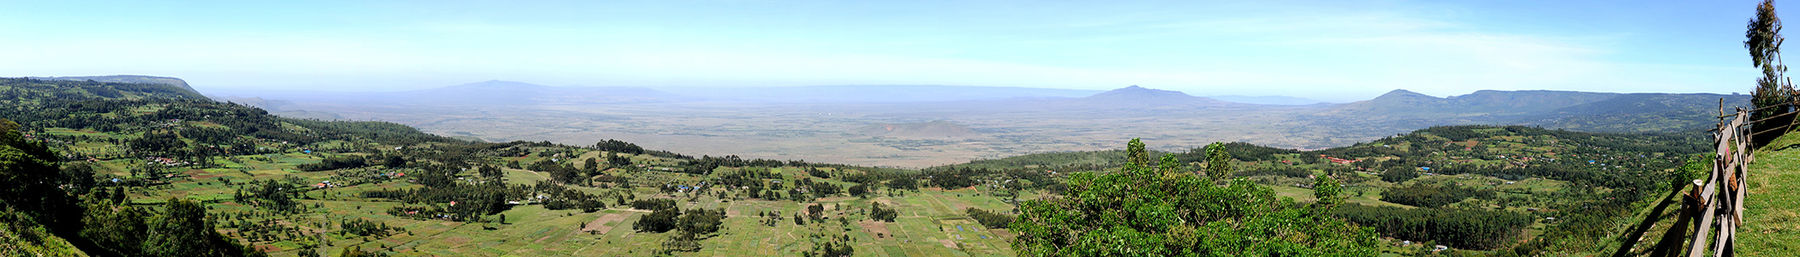 Great Rift Valley, Kenia